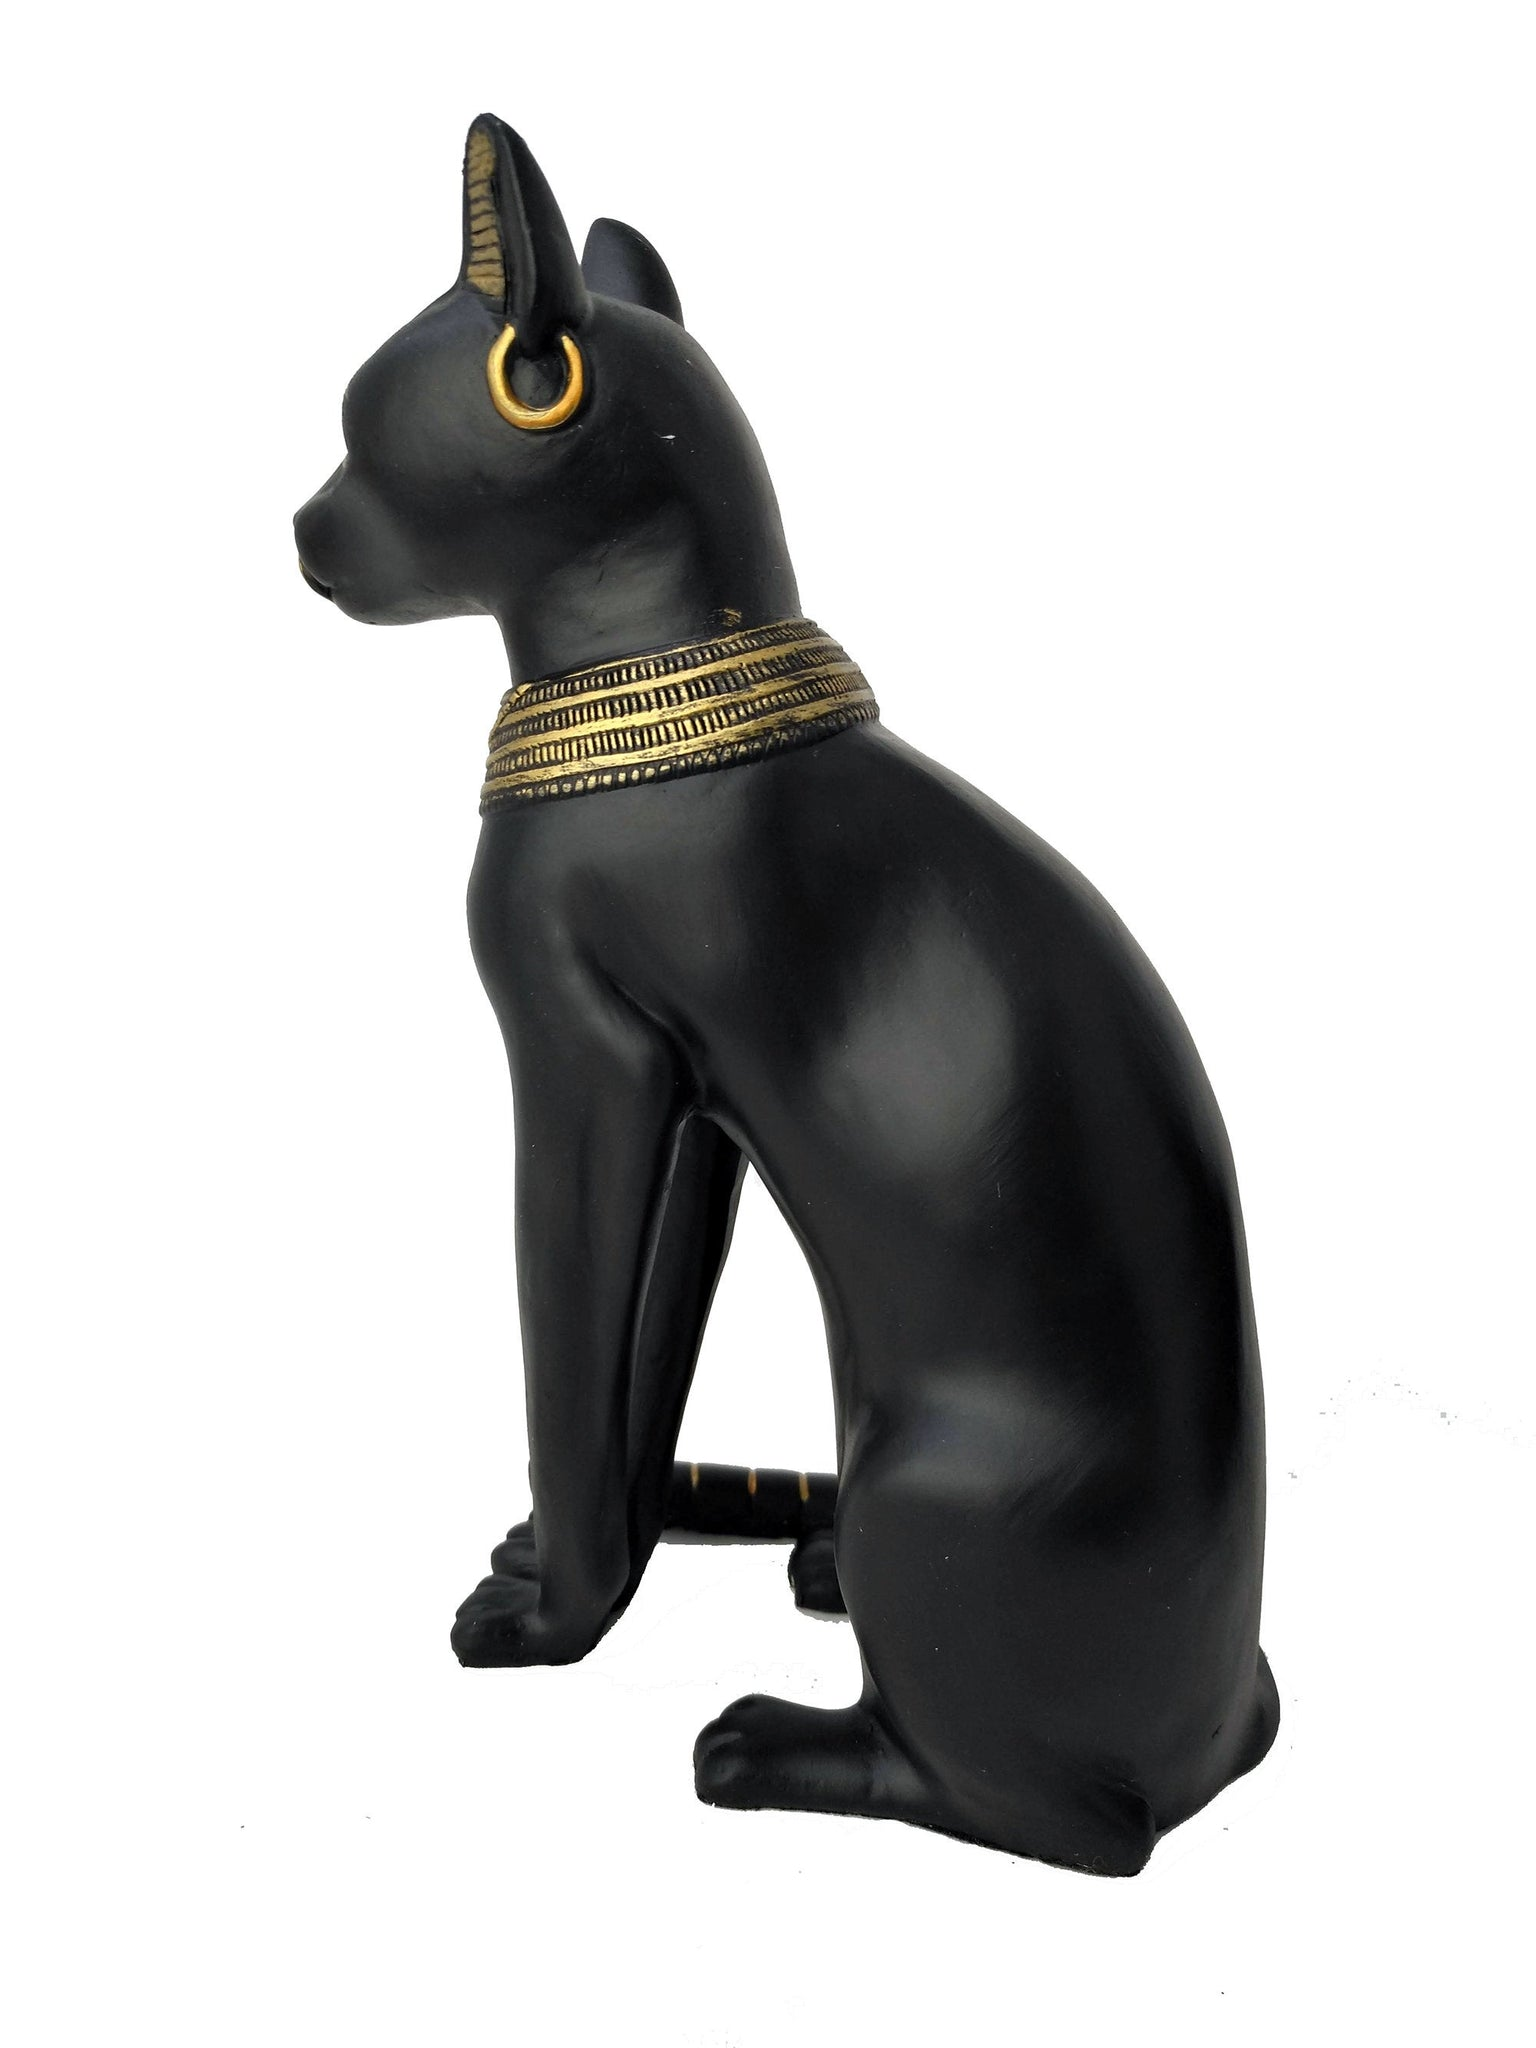 Bastet Statue with Gold Detail - Large